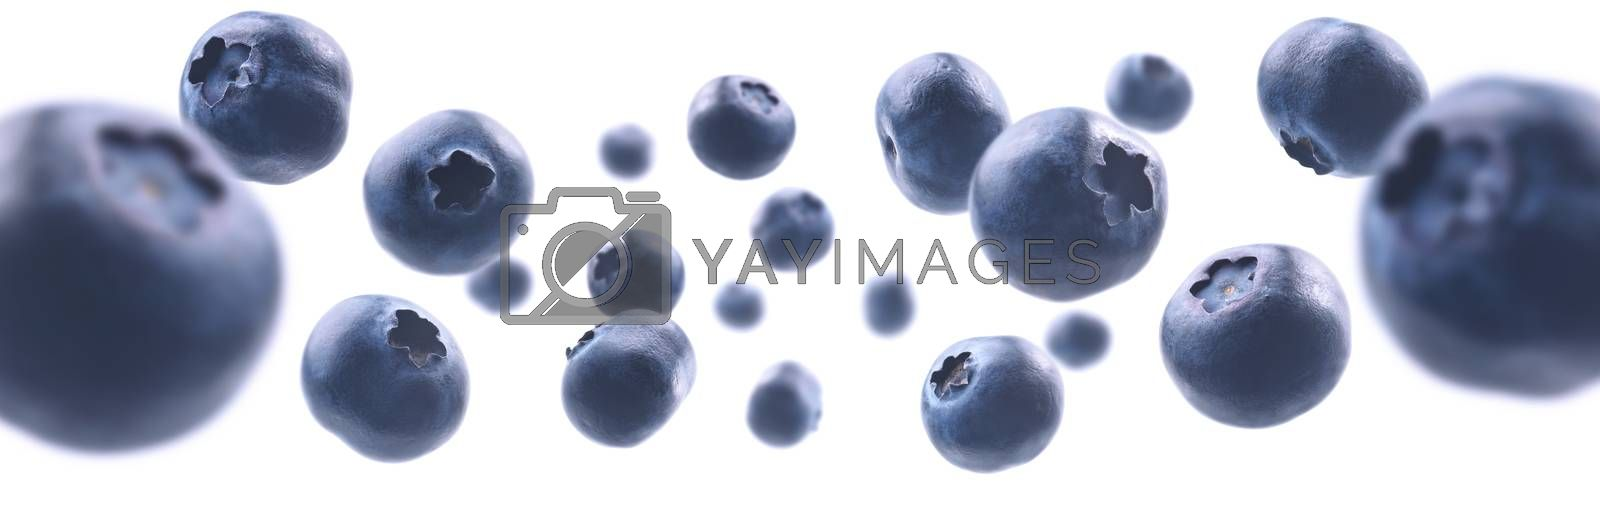 Ripe blueberries levitate on a white background.